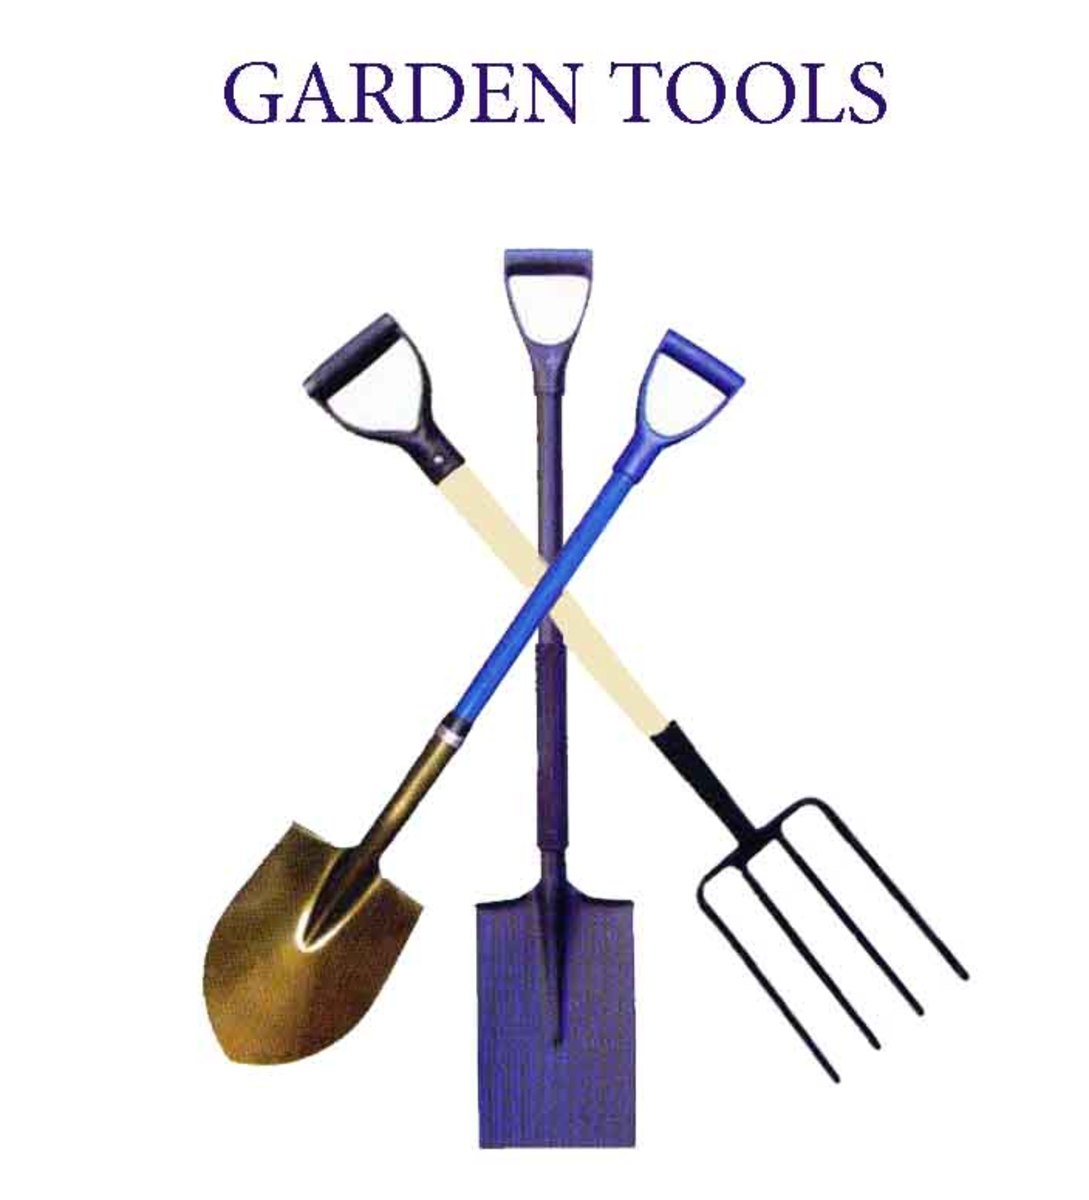 The Most Useful Tools In The Shed: What Tools To Own And How To Properly Clean and Store Them